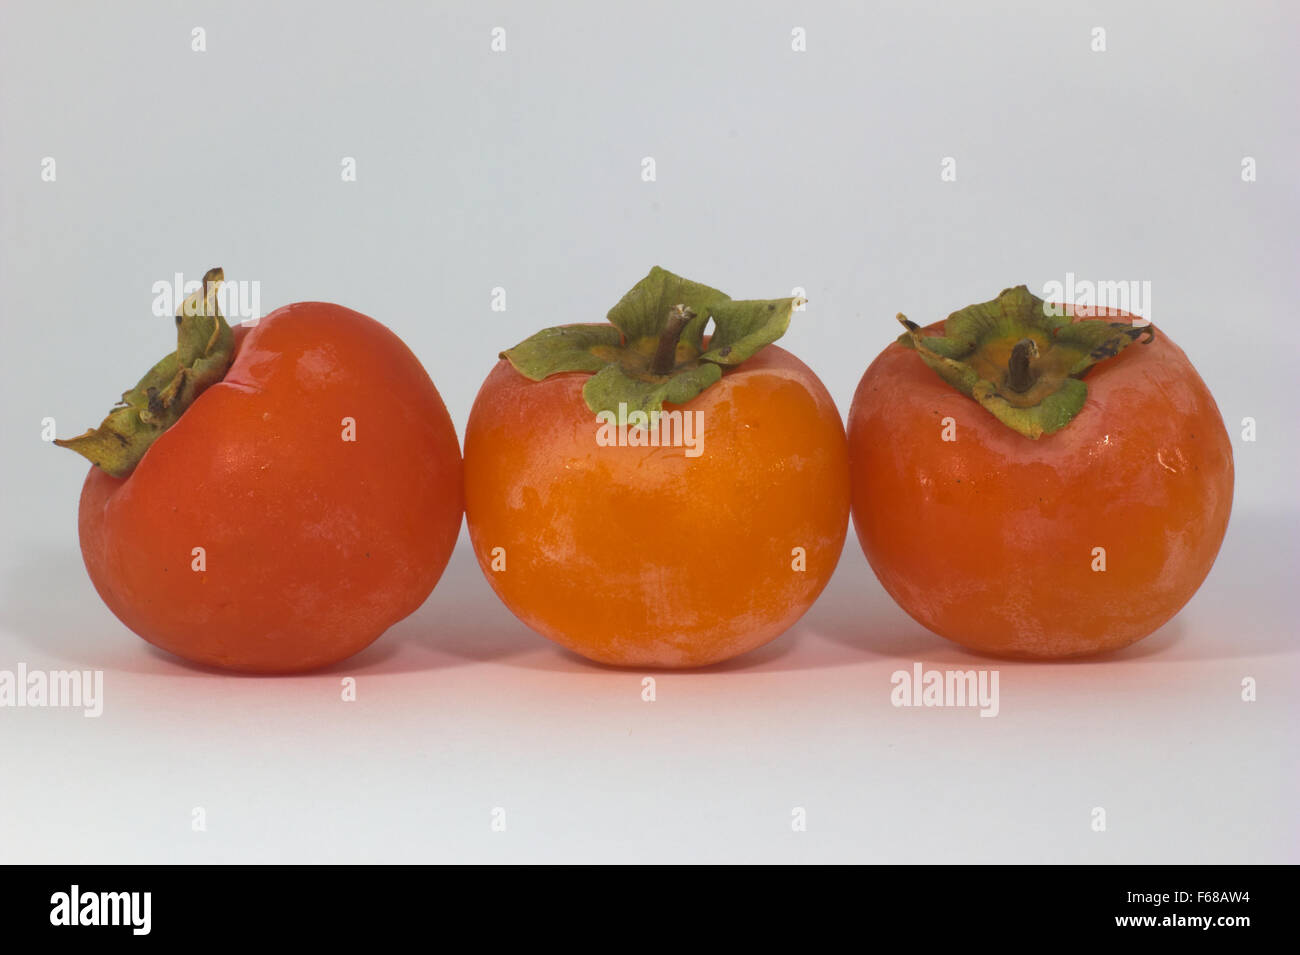 close-up of fabulous persimmon orange and green - Stock Image